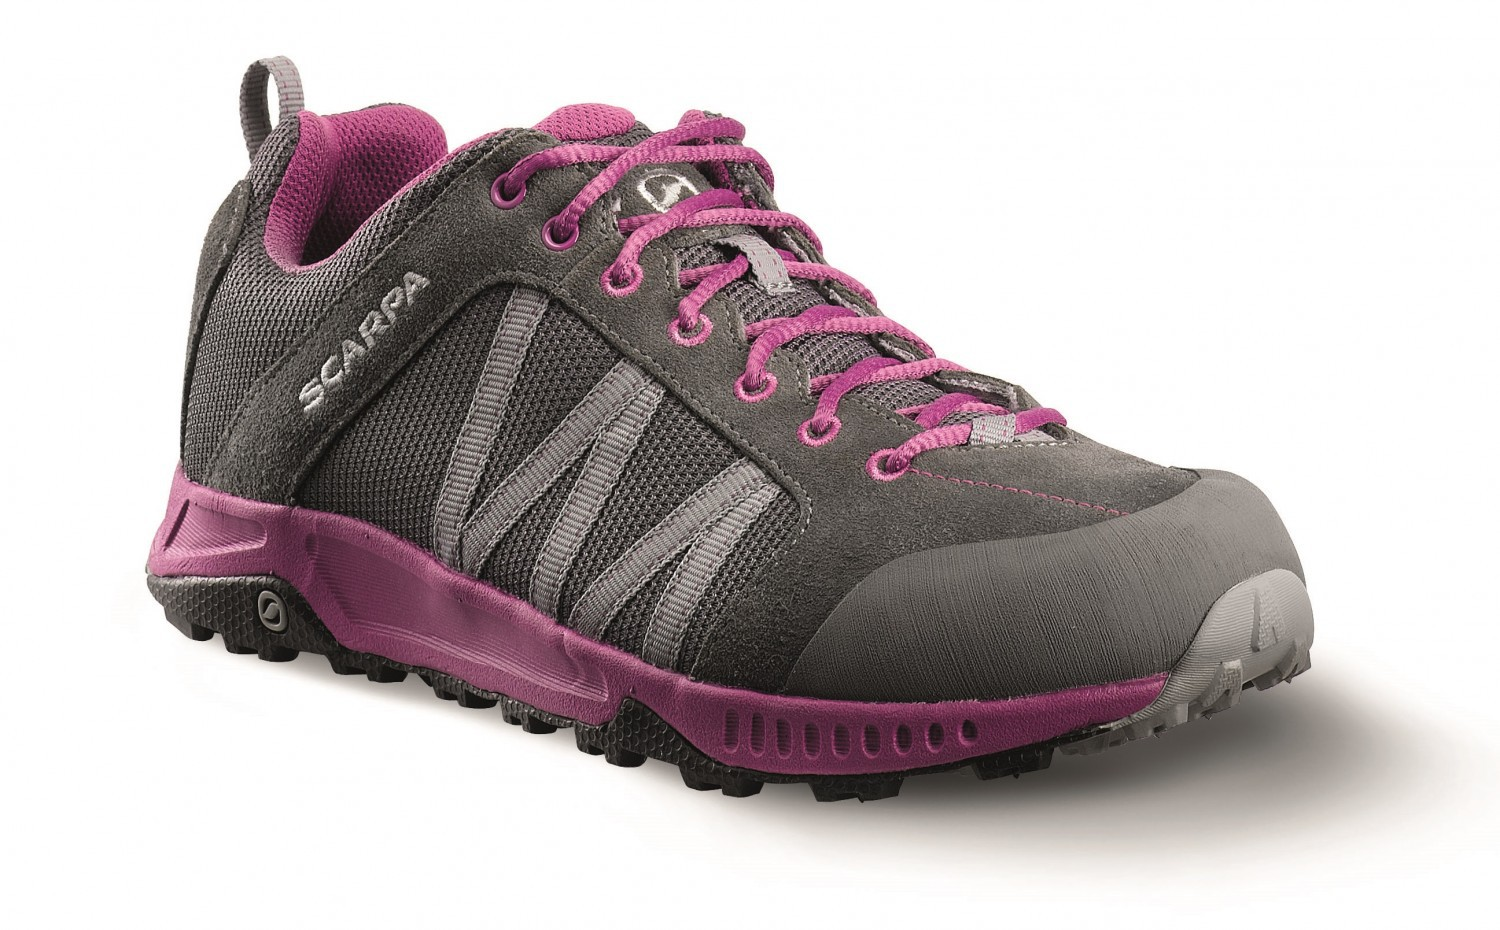 Scarpa - Rapid Wmn Gray-Fuchsia - Trailrunning Shoes - 43